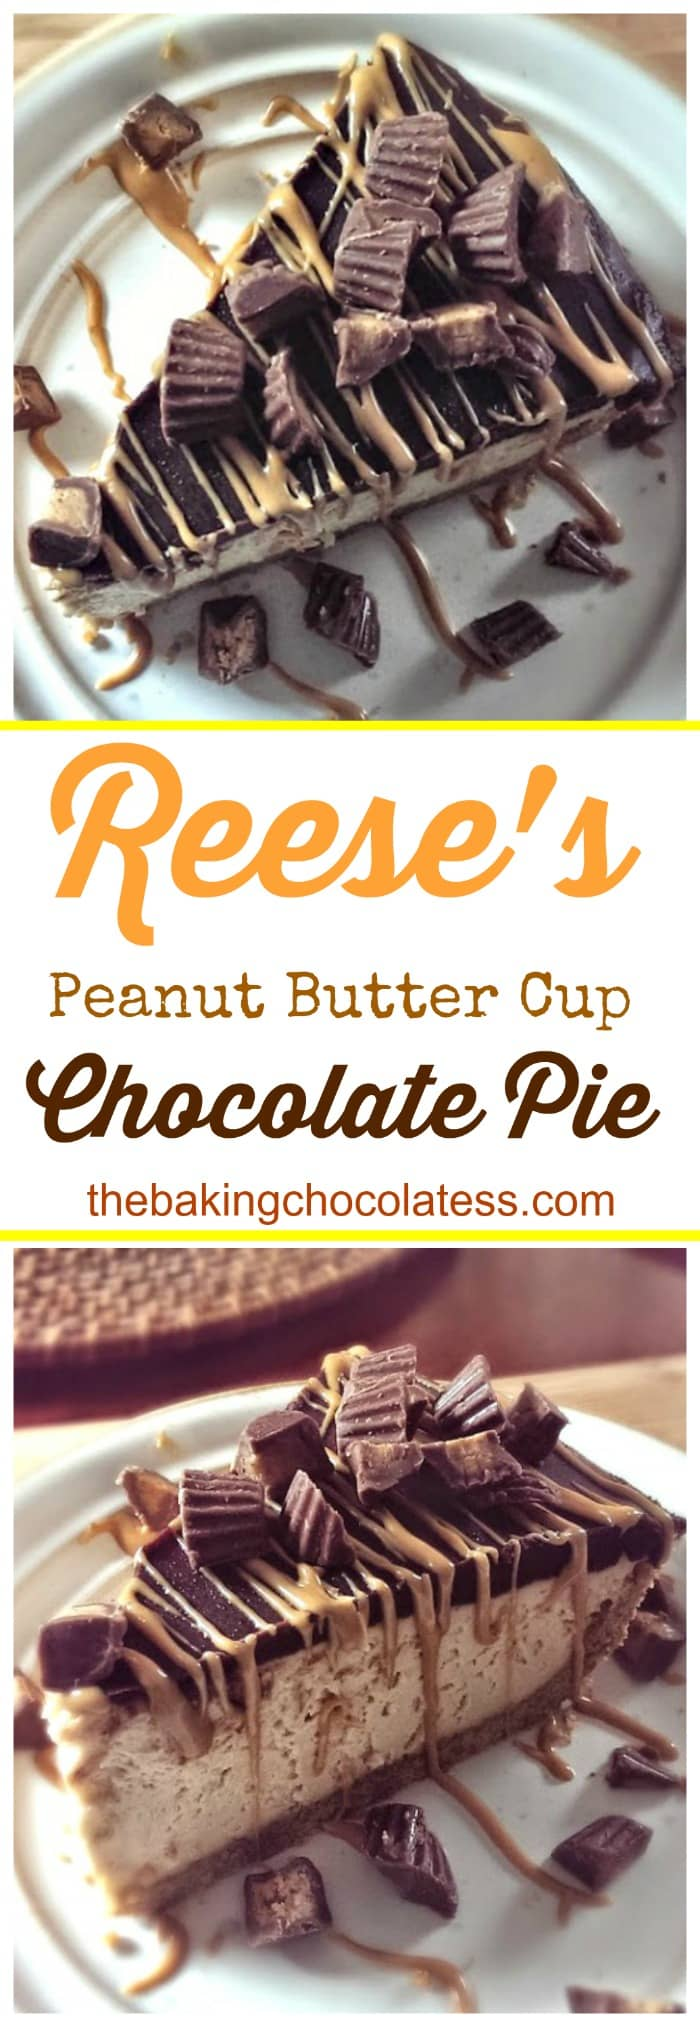 Reese\'s Peanut Butter Cup Chocolate Pie - It\'s Phenomenal!